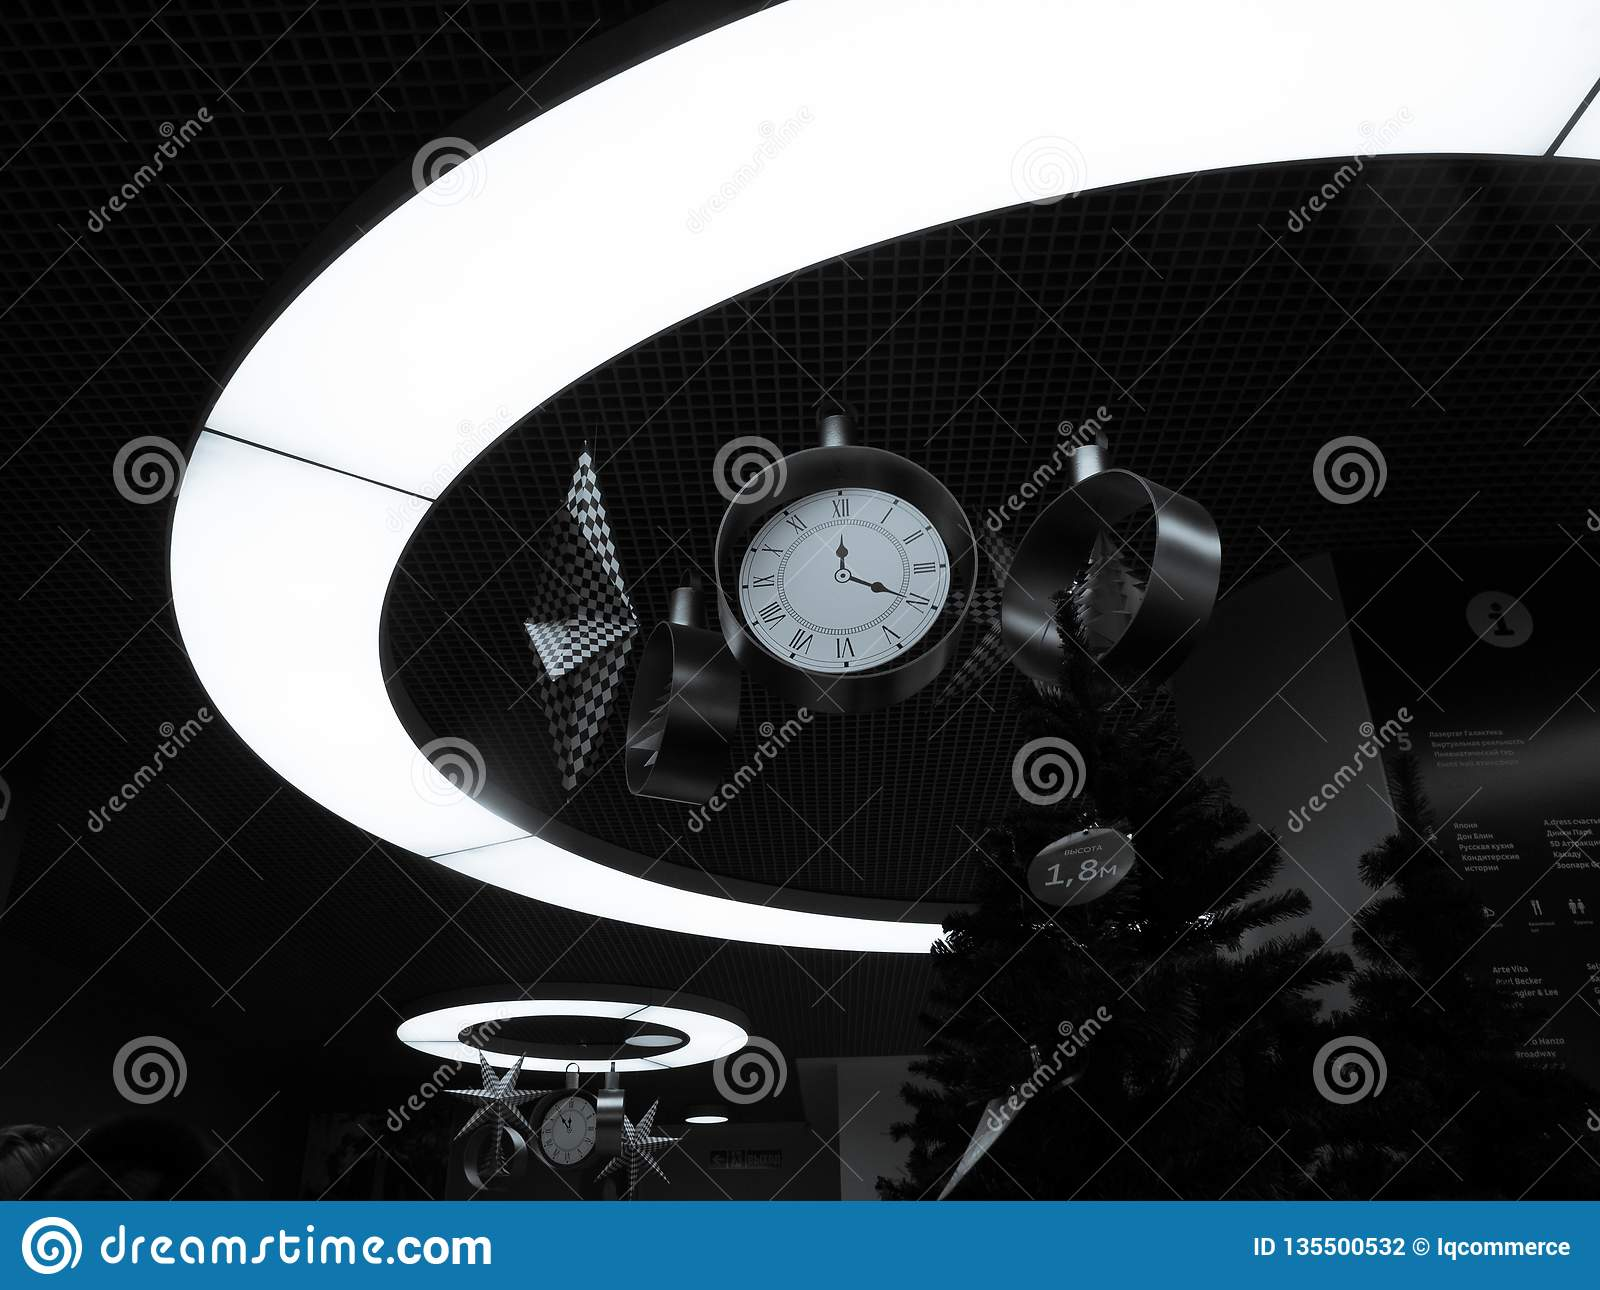 Decorative clocks with stars in the lighting circle